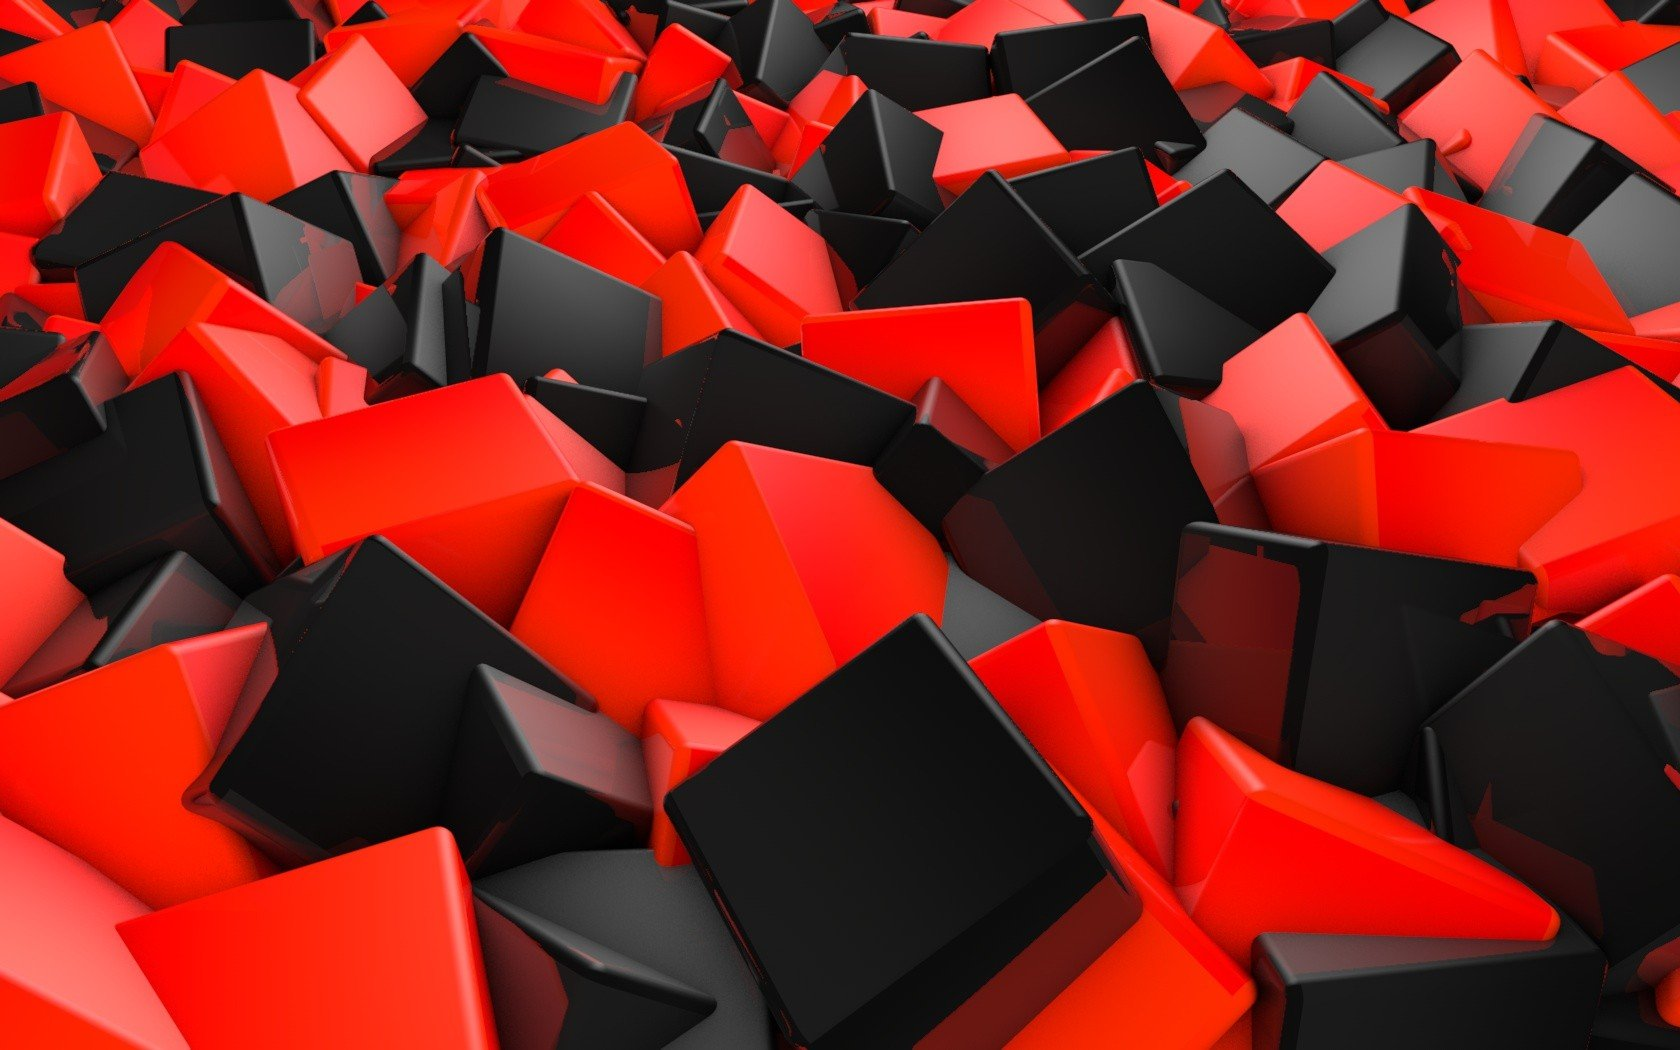 Abstract Red and Black Abstract Wallpaper HD Wallpapers Desktop 1680x1050